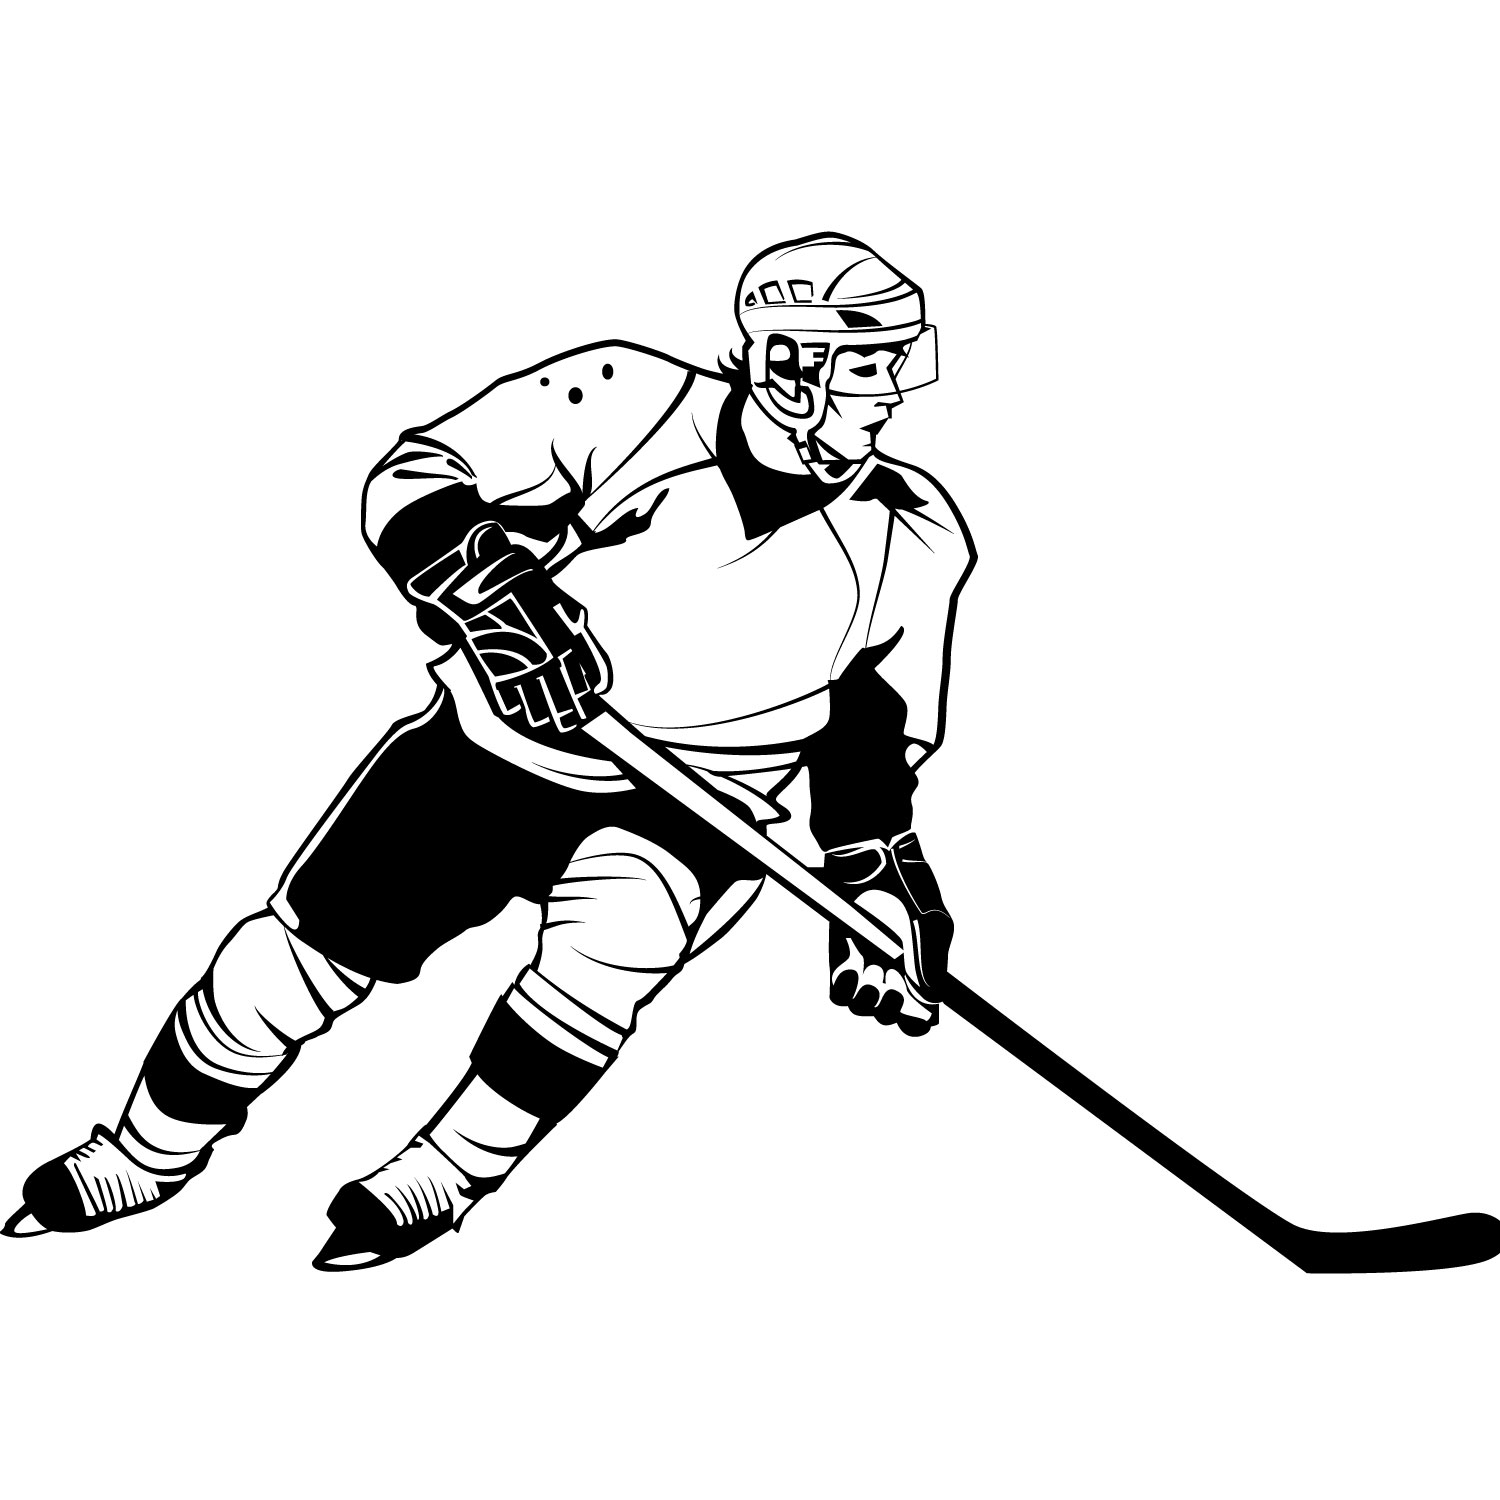 Hockey Clip Art Images Free.